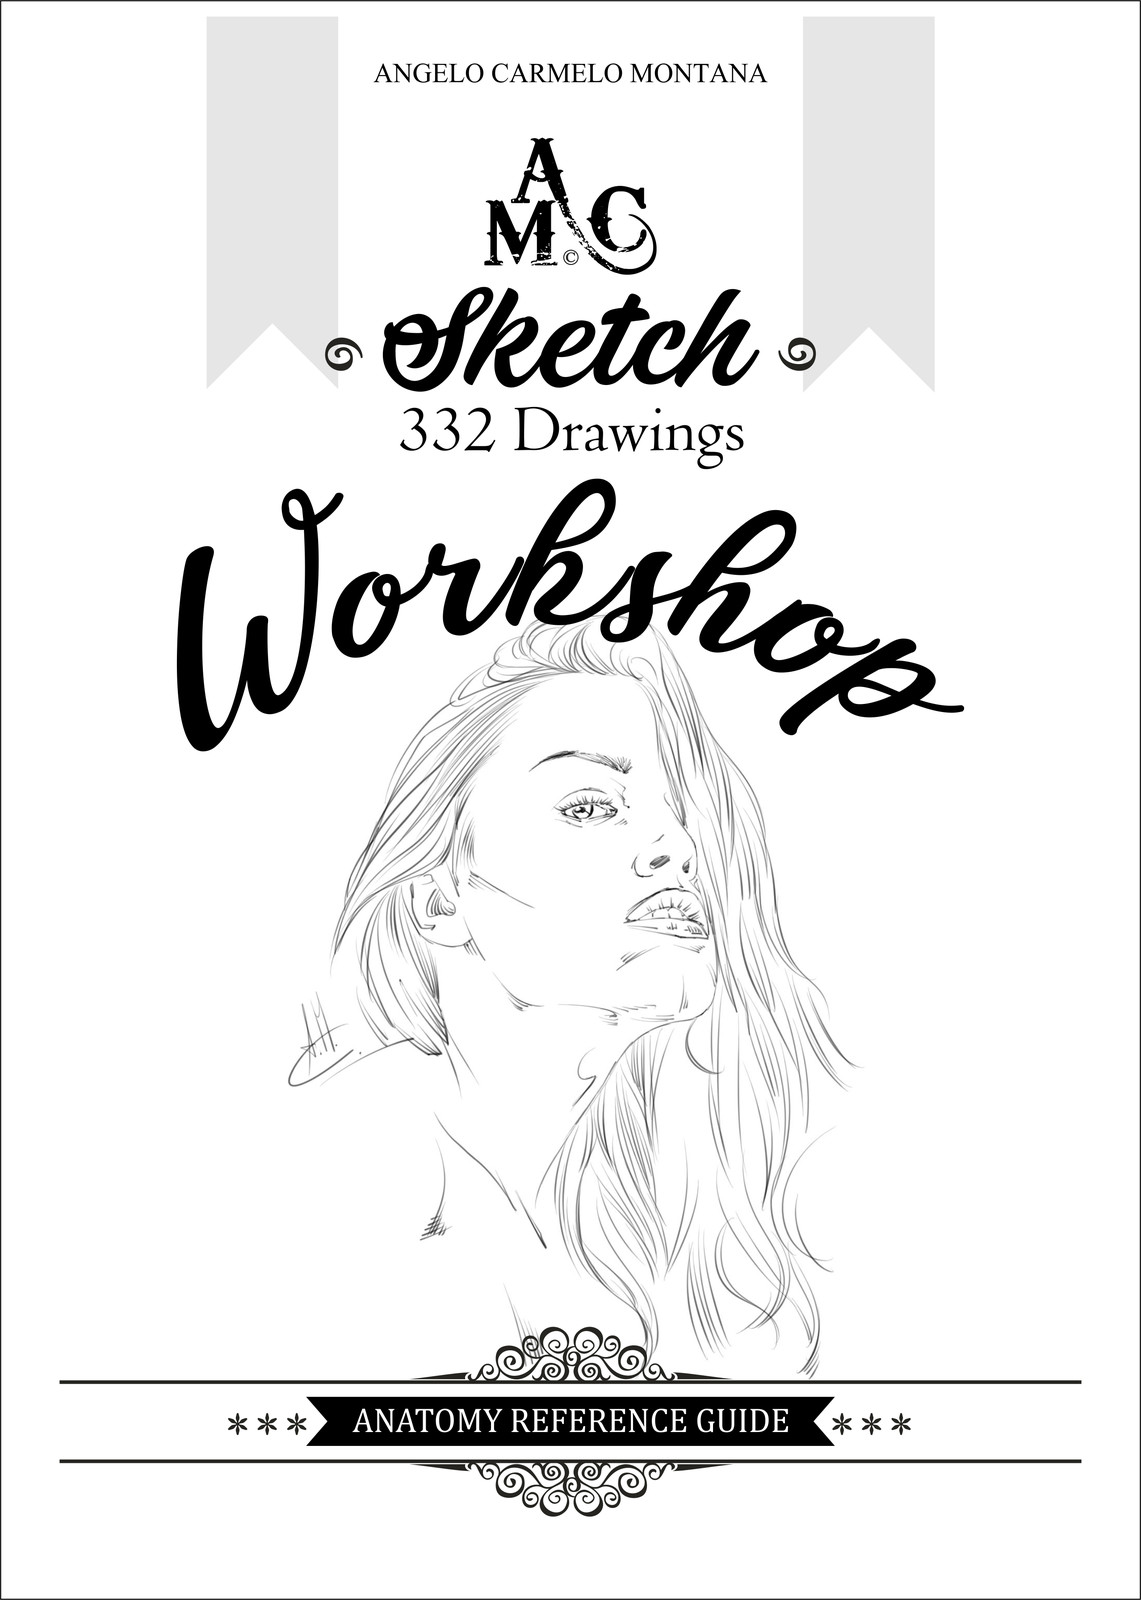 Sketch Workshop 1